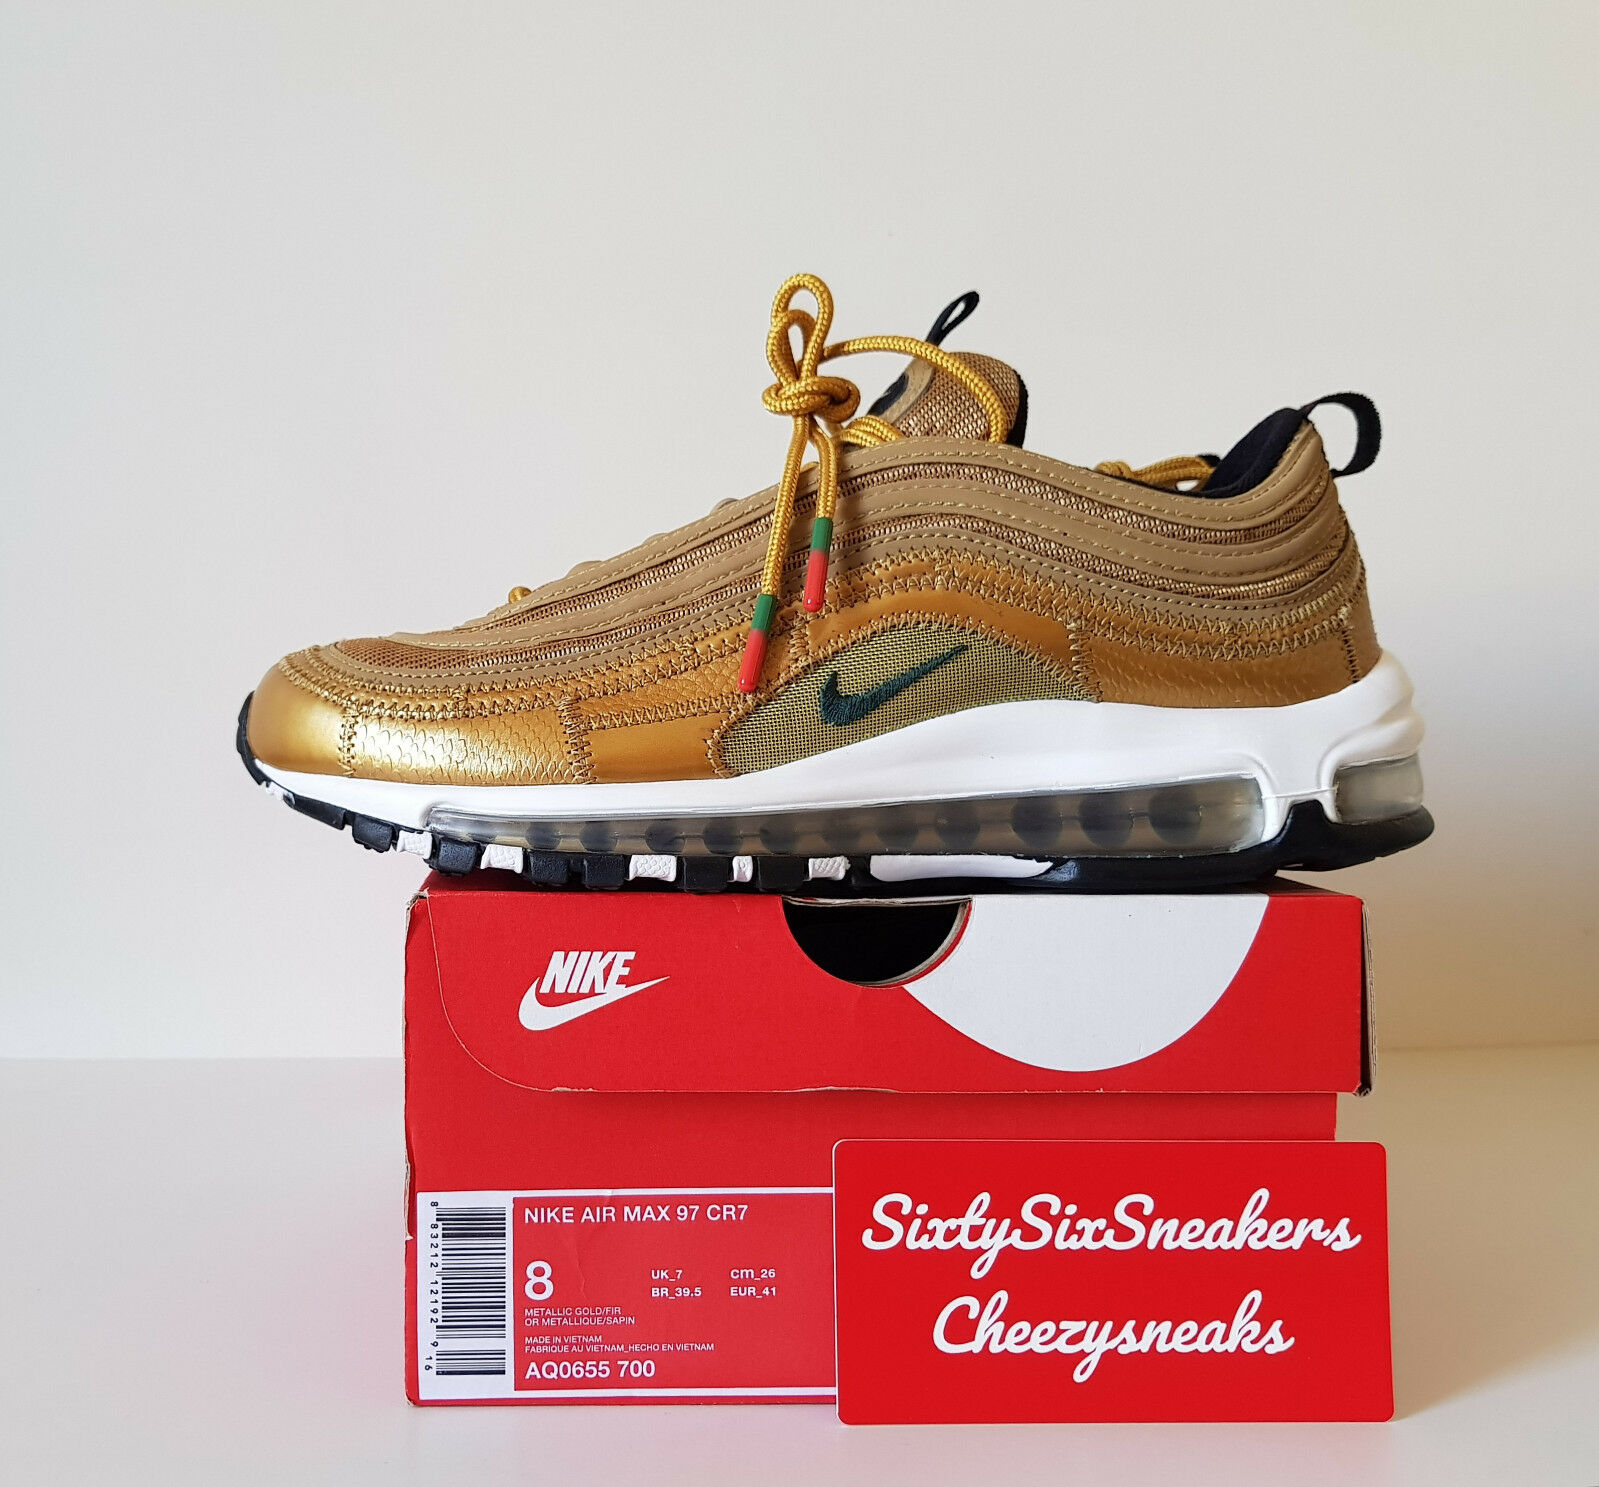 Nike Air max 97 CR7 gold TZ  8US 7New DS